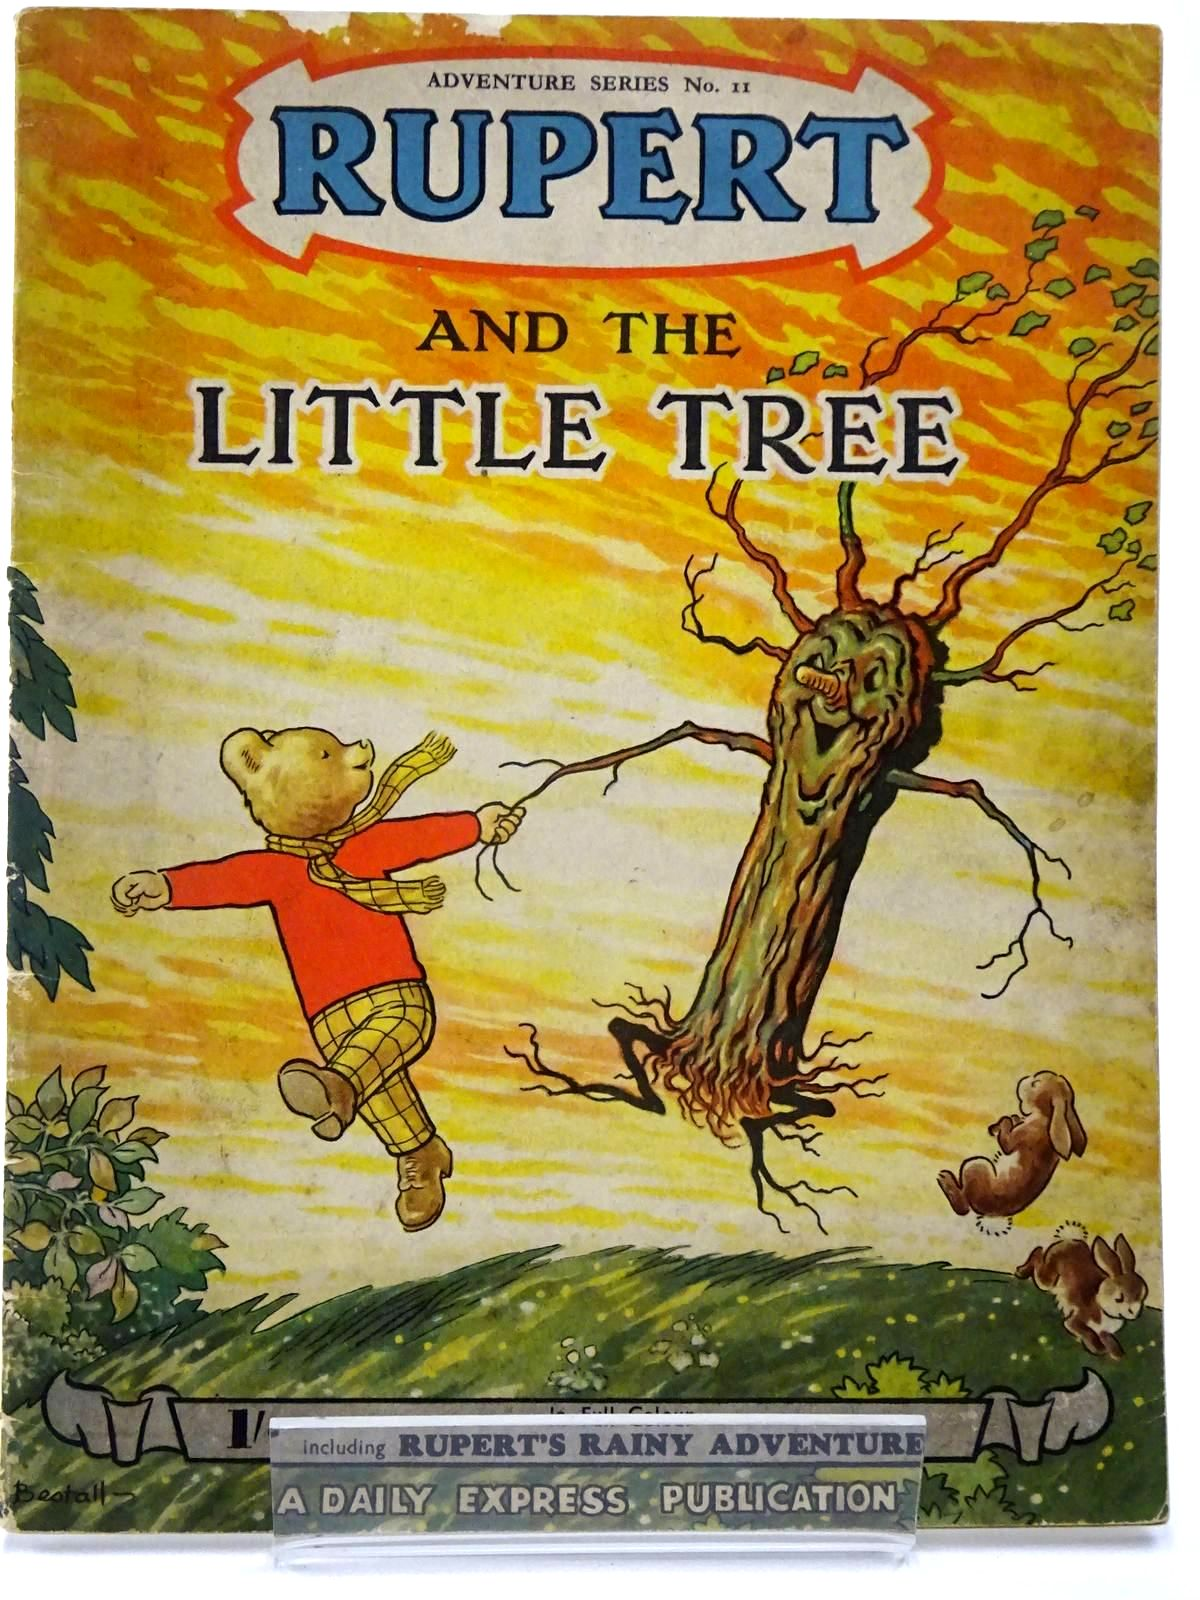 Photo of RUPERT ADVENTURE SERIES No. 11 - RUPERT AND THE LITTLE TREE written by Bestall, Alfred illustrated by Bestall, Alfred published by Daily Express (STOCK CODE: 2130227)  for sale by Stella & Rose's Books